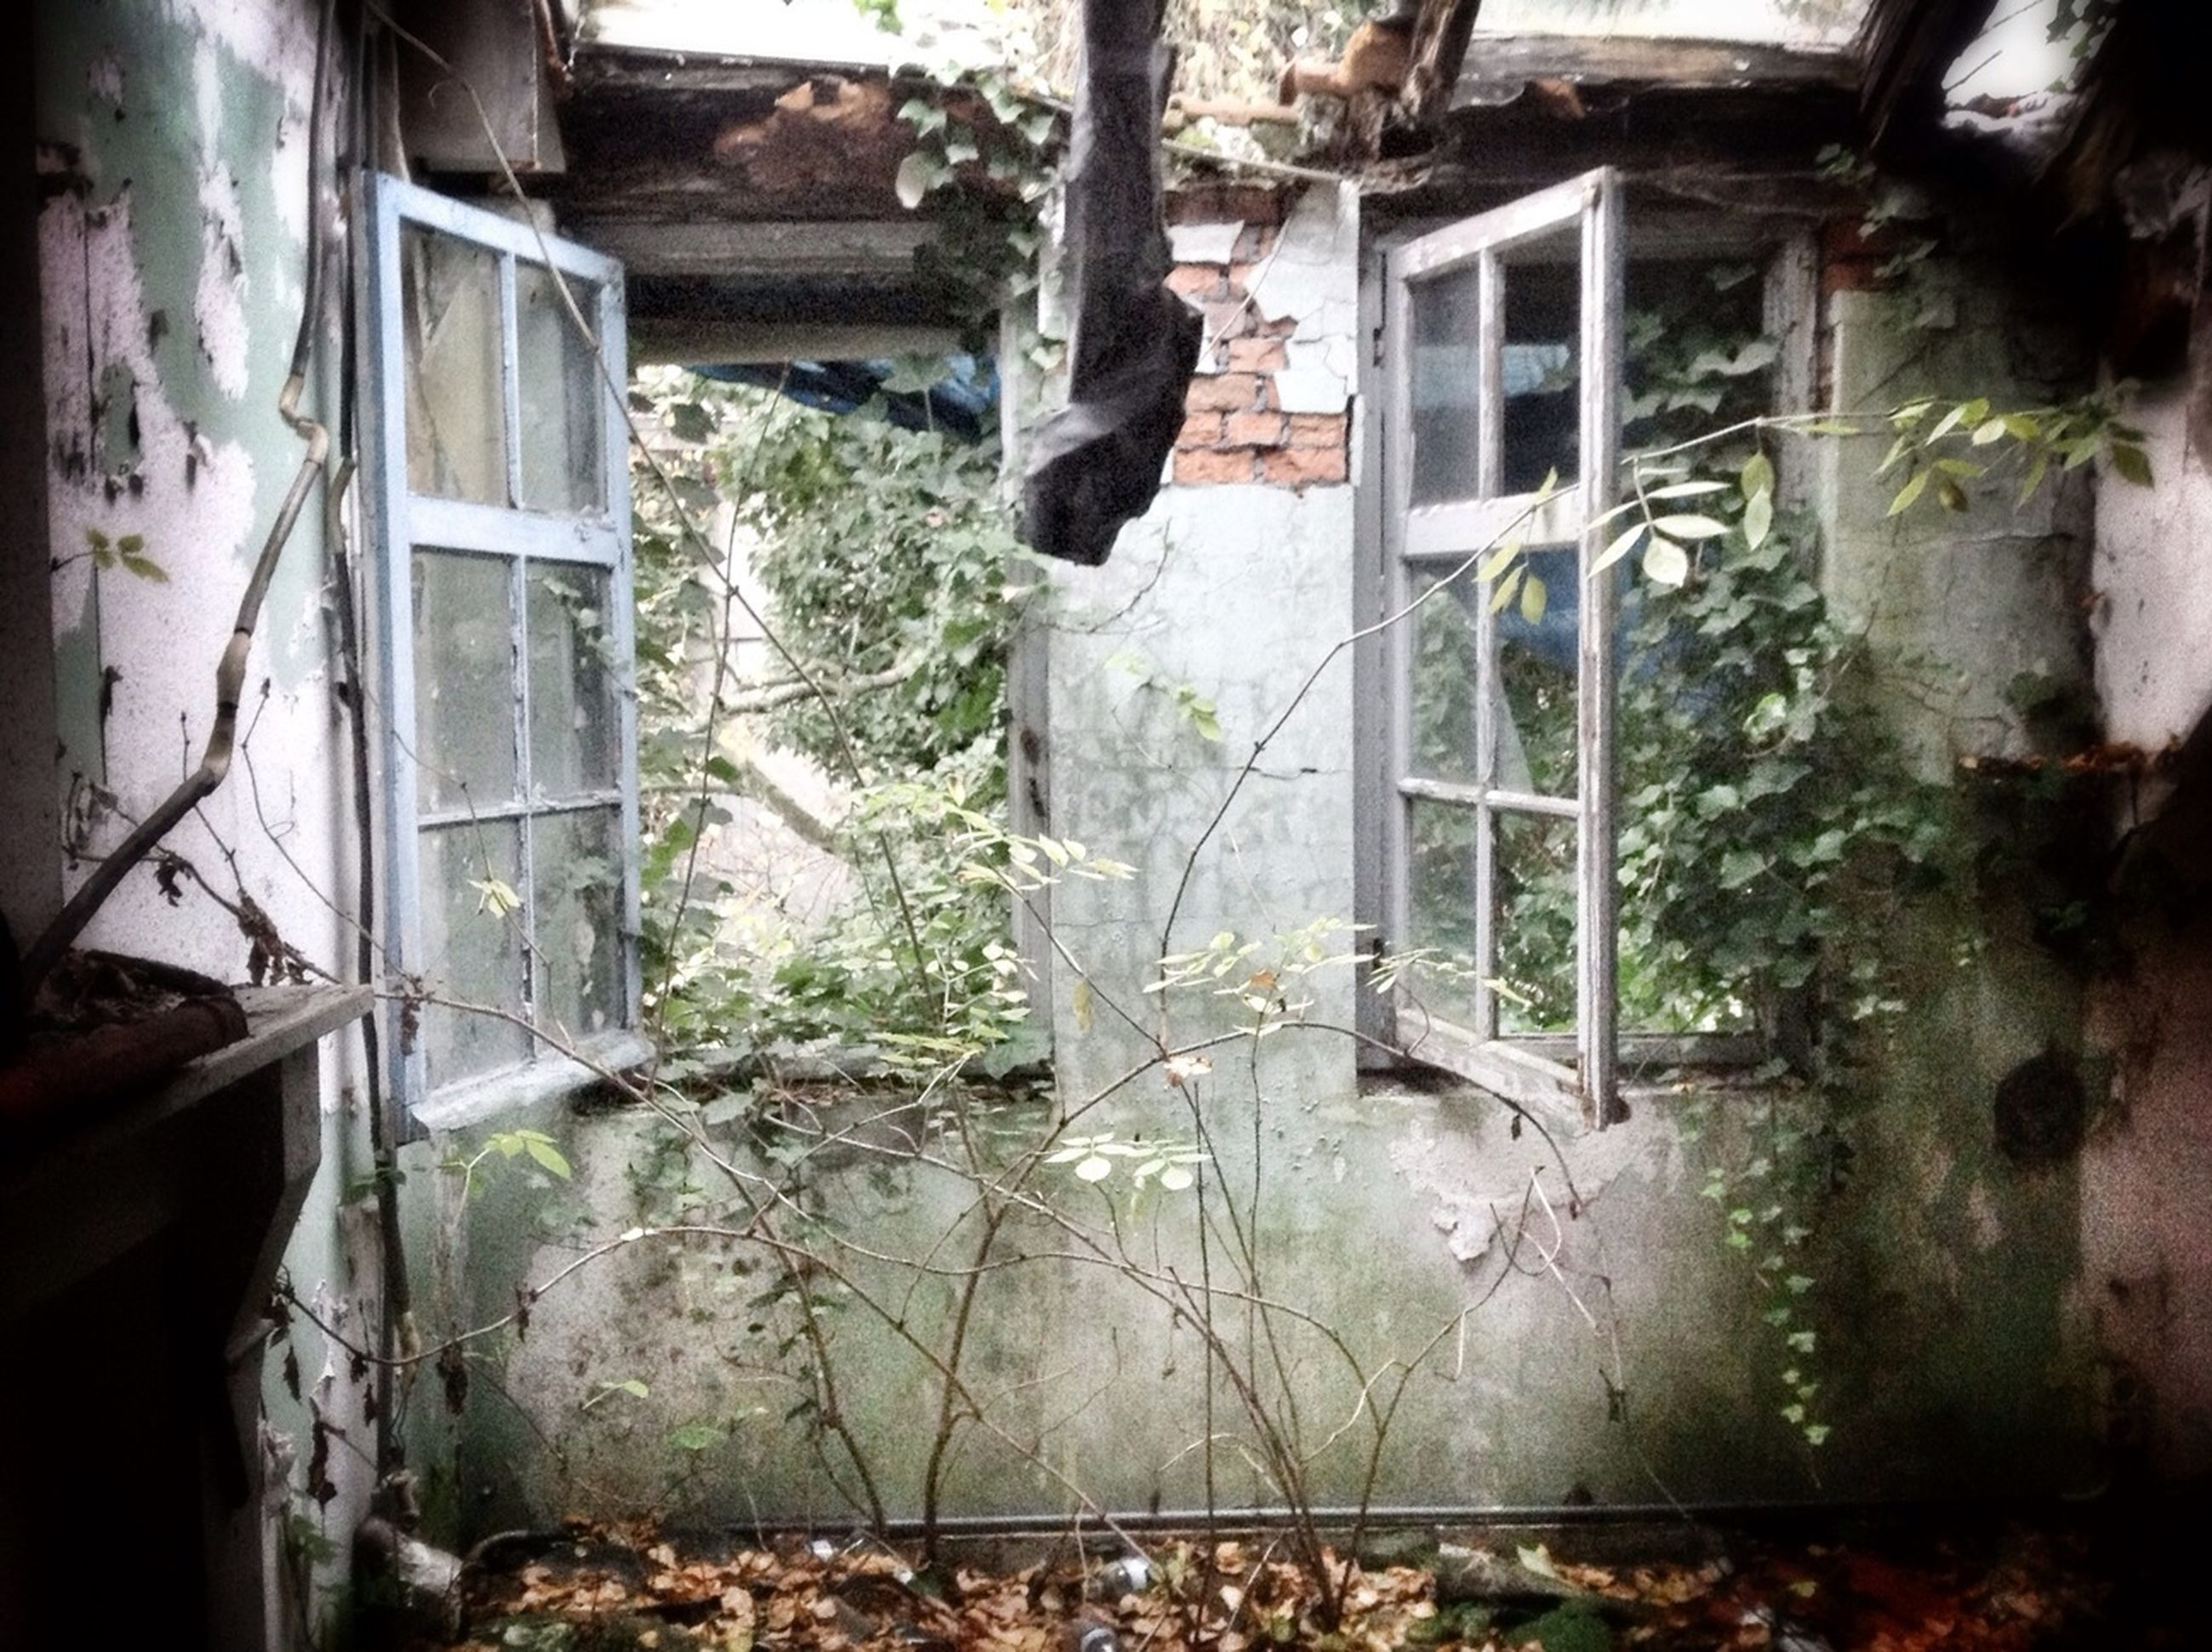 architecture, built structure, building exterior, window, abandoned, house, damaged, obsolete, old, weathered, run-down, deterioration, bad condition, residential structure, door, residential building, wall - building feature, building, broken, destruction